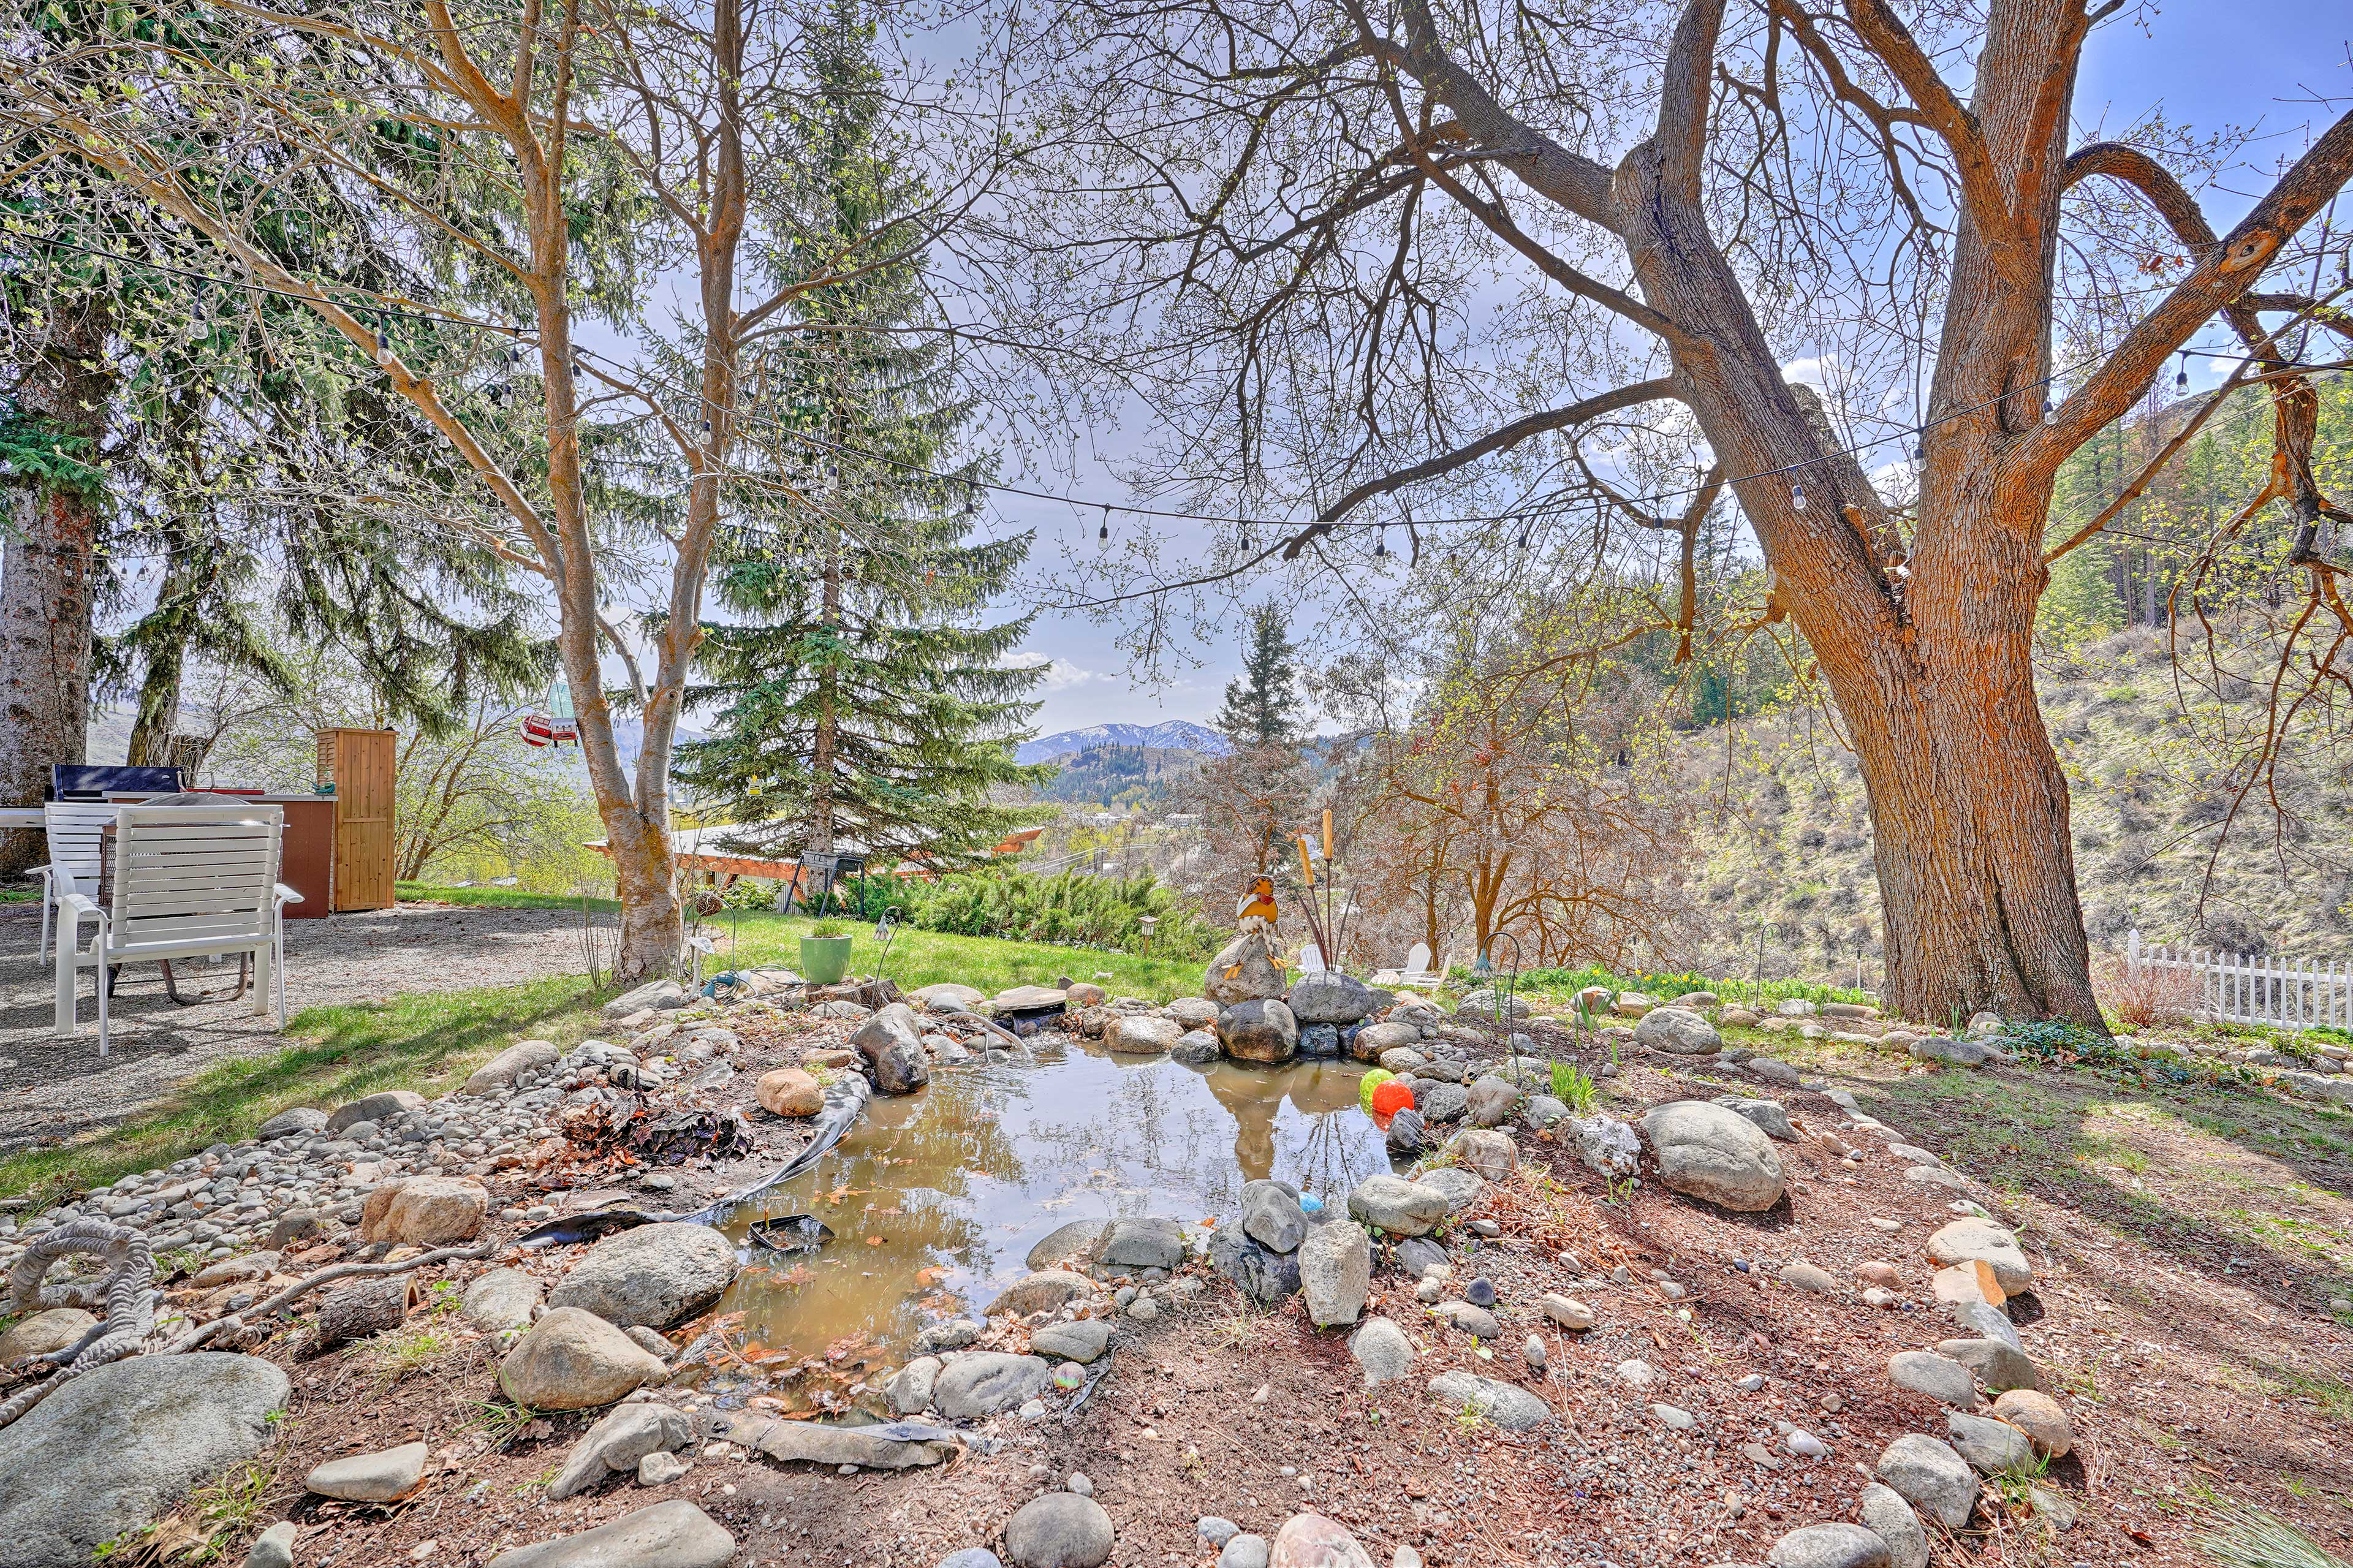 Sit by the home's little pond and listen to the wind rustling through the trees.